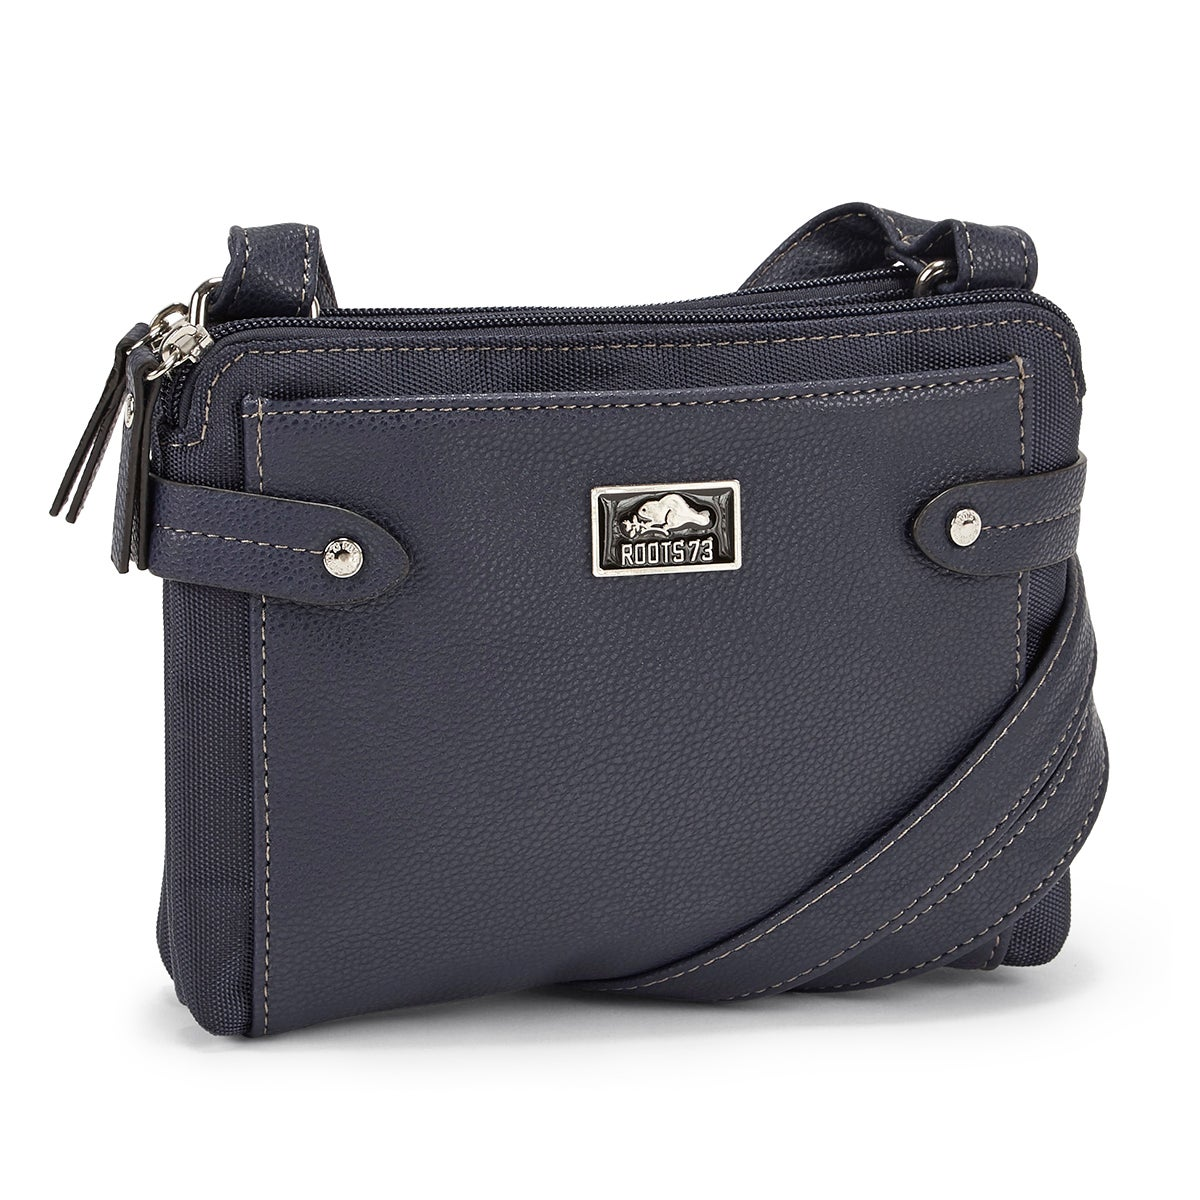 LdsRoots73 navy 2 compartment crossbody